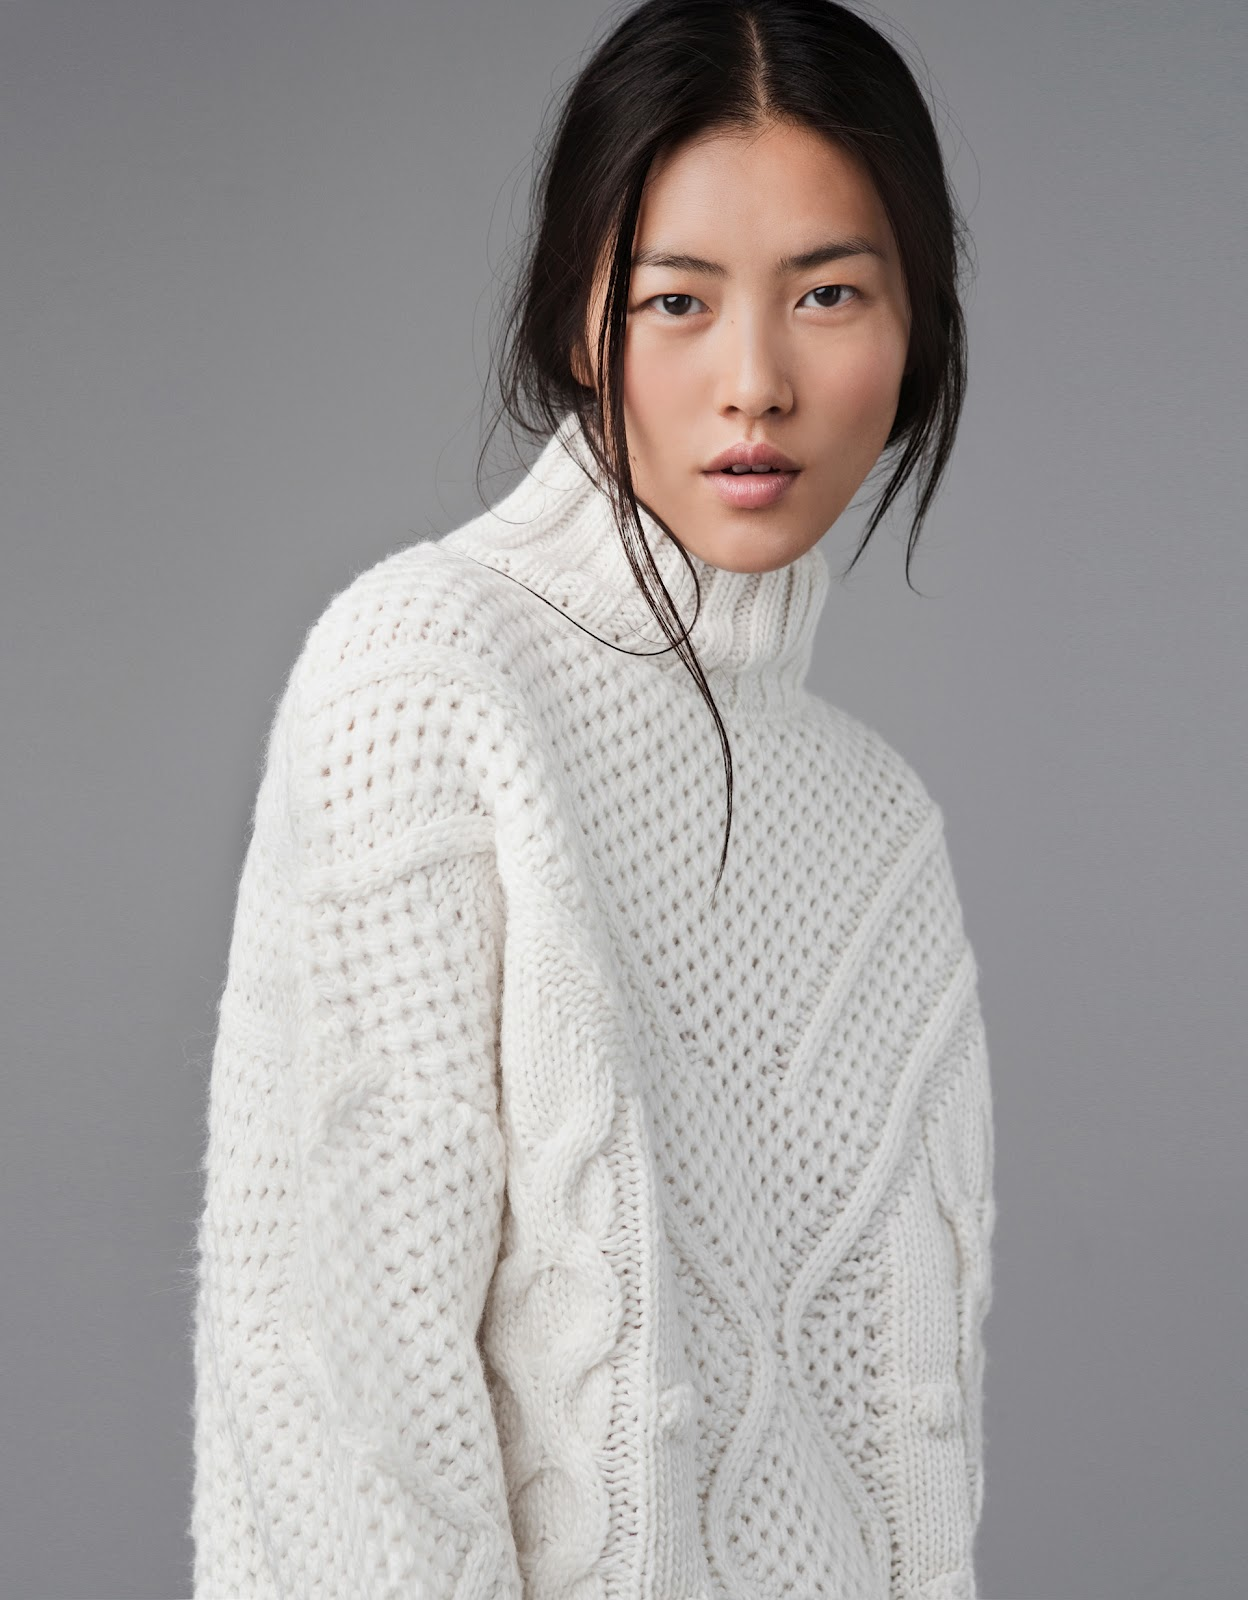 Shop for Women's Sweaters at Joe Fresh. Stylish and affordable Sweaters withFREE SHIPPING on orders over $ FREE RETURNS in store.